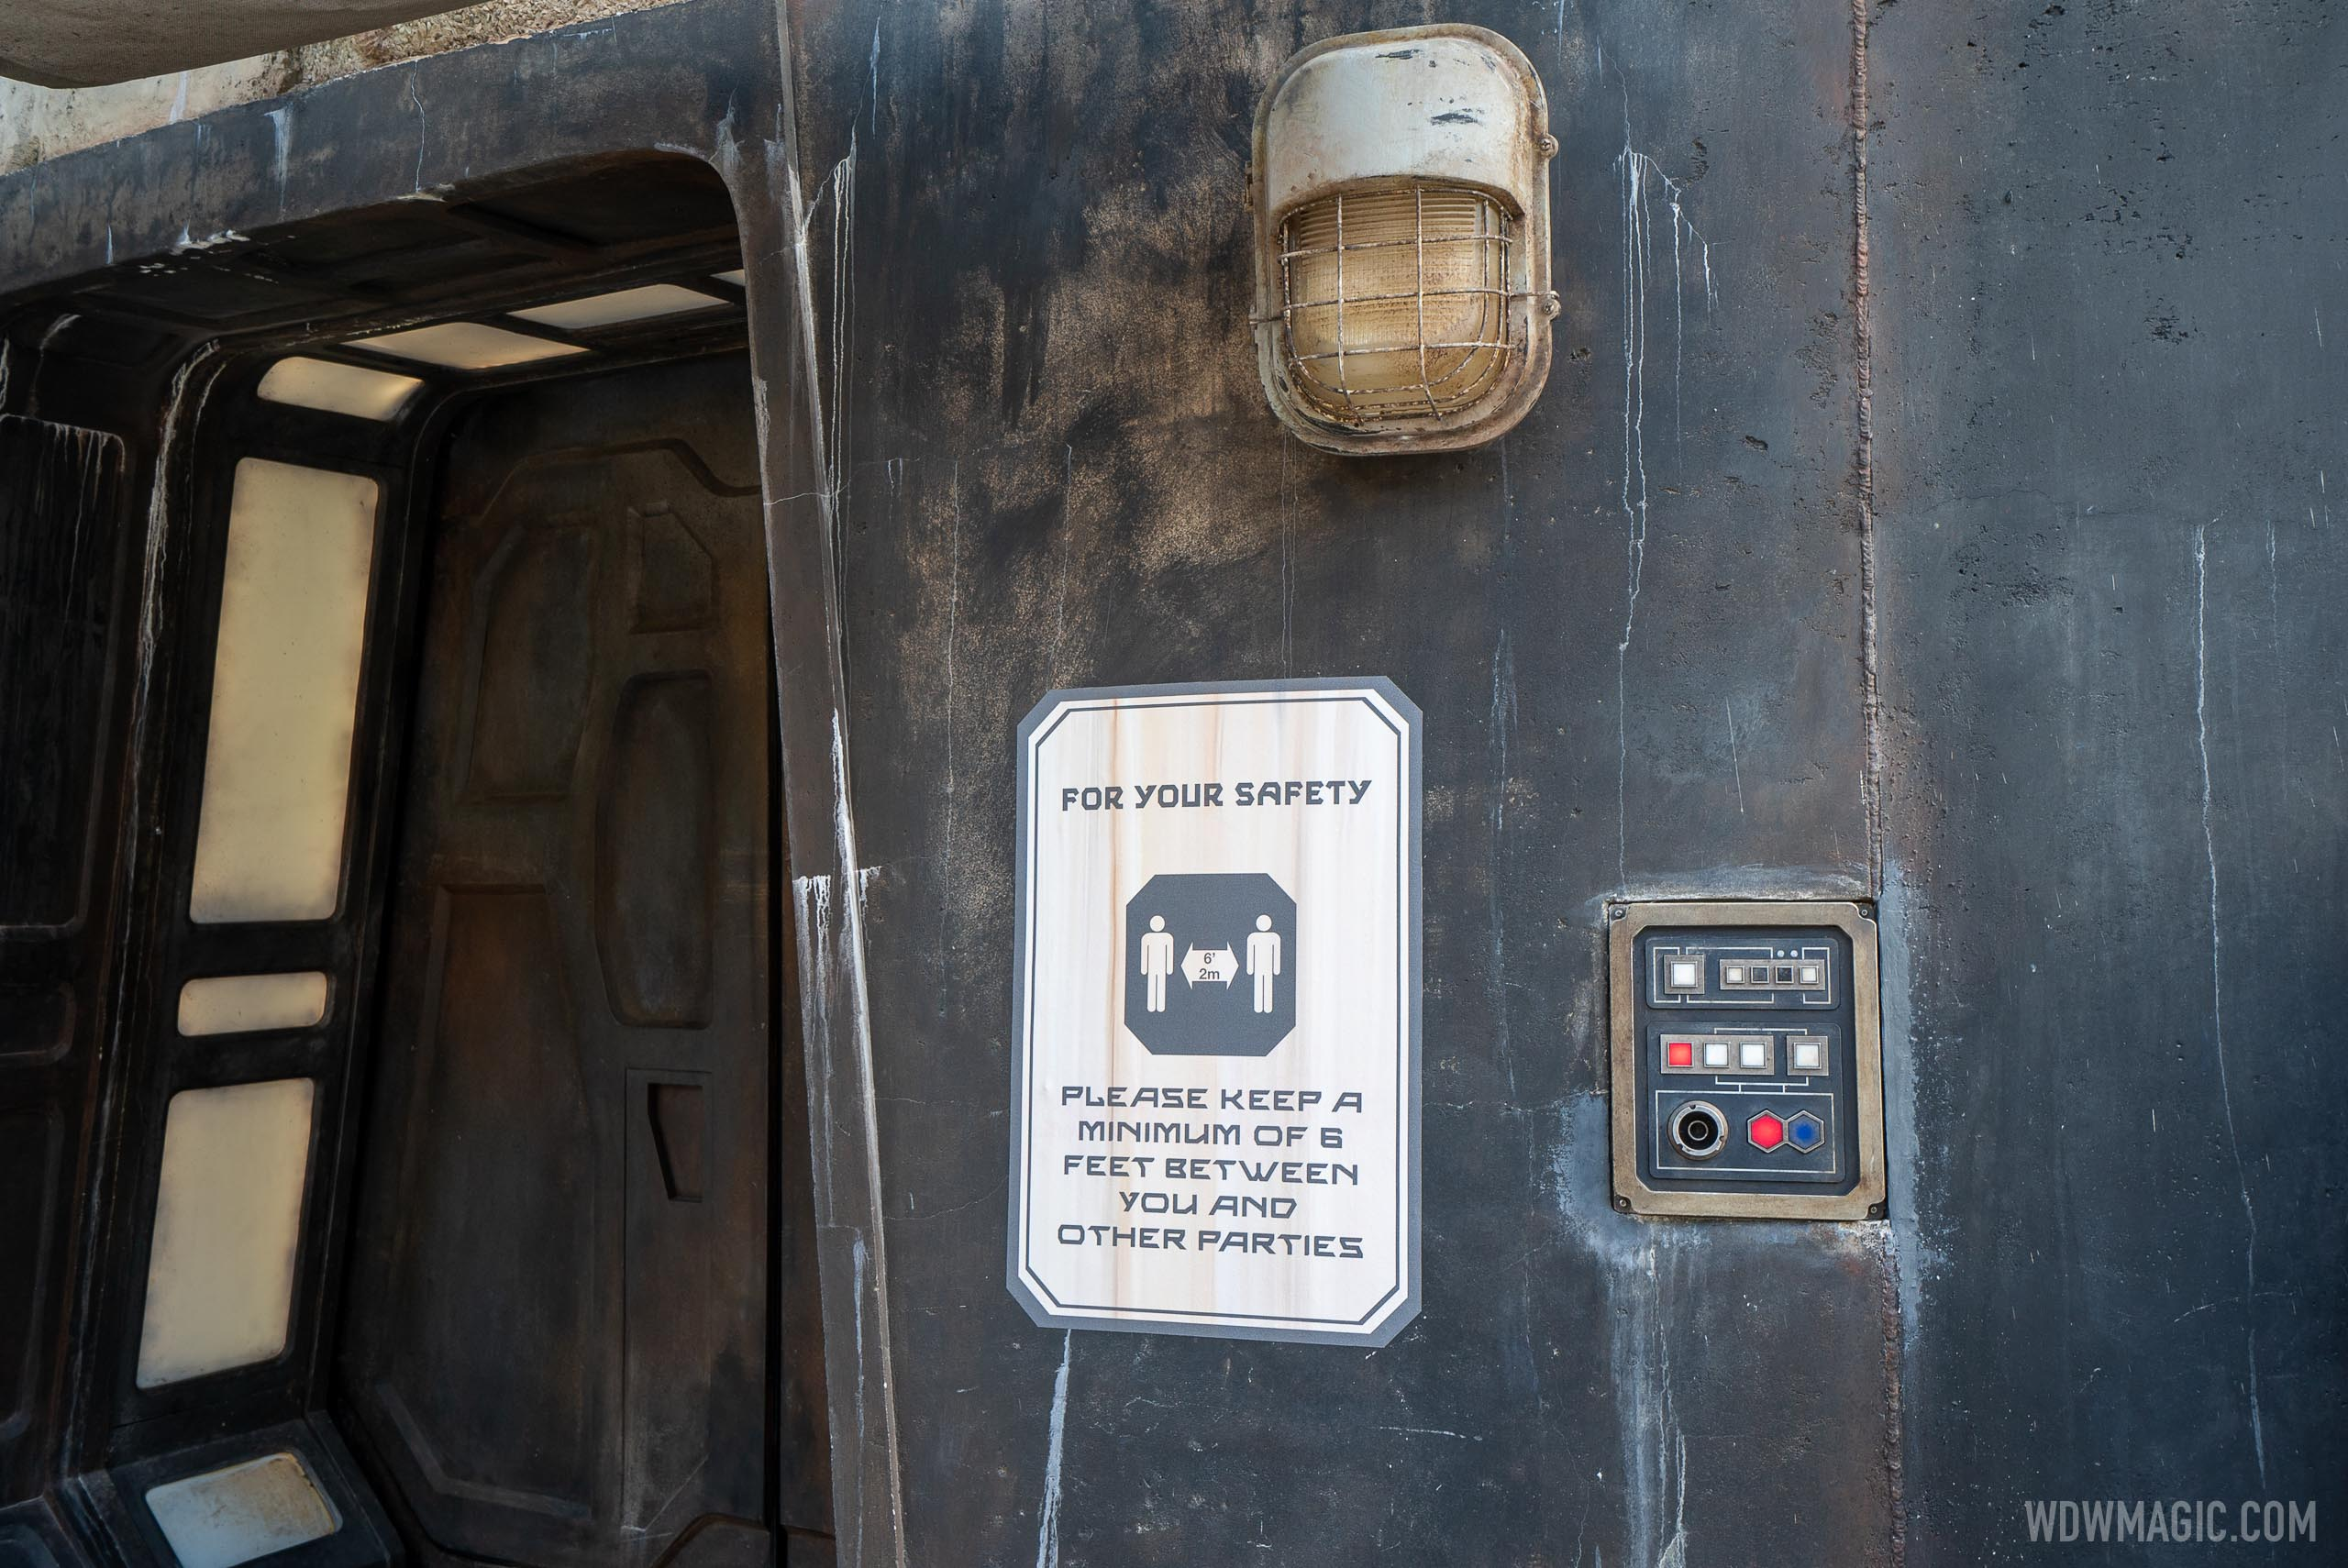 Themed physical distancing safety signs in Galaxy's Edge